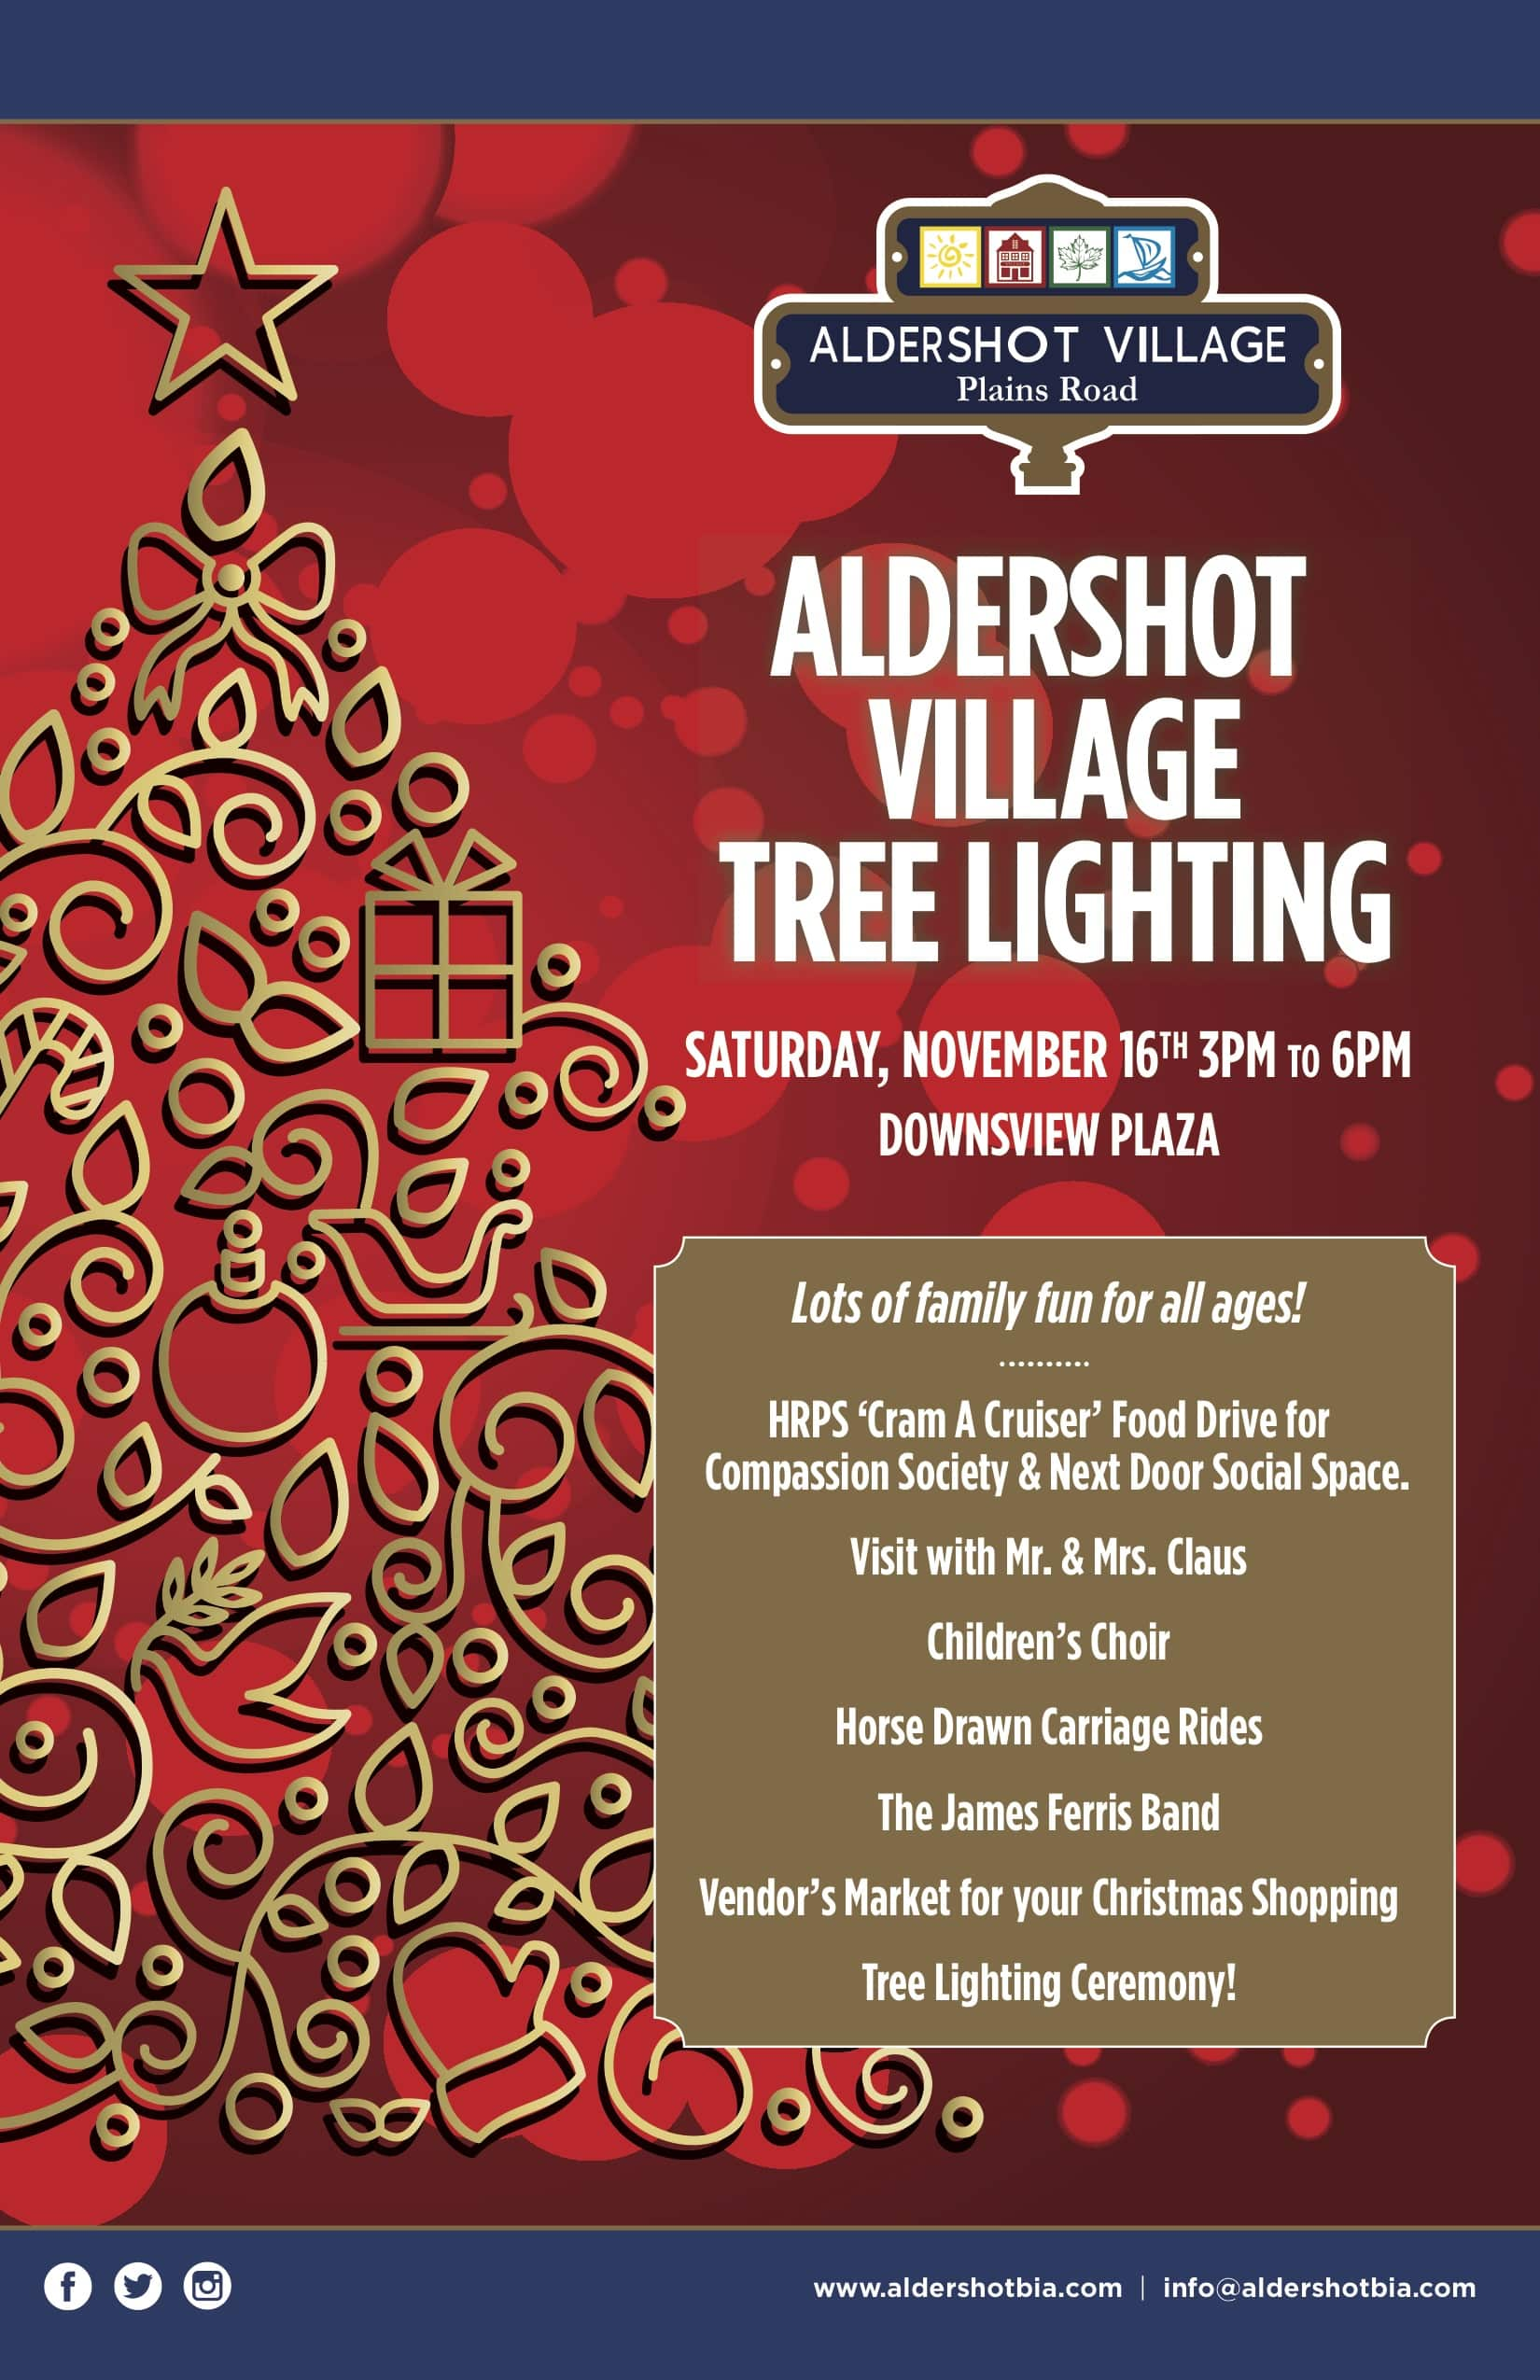 Aldershot Village Tree Lighting